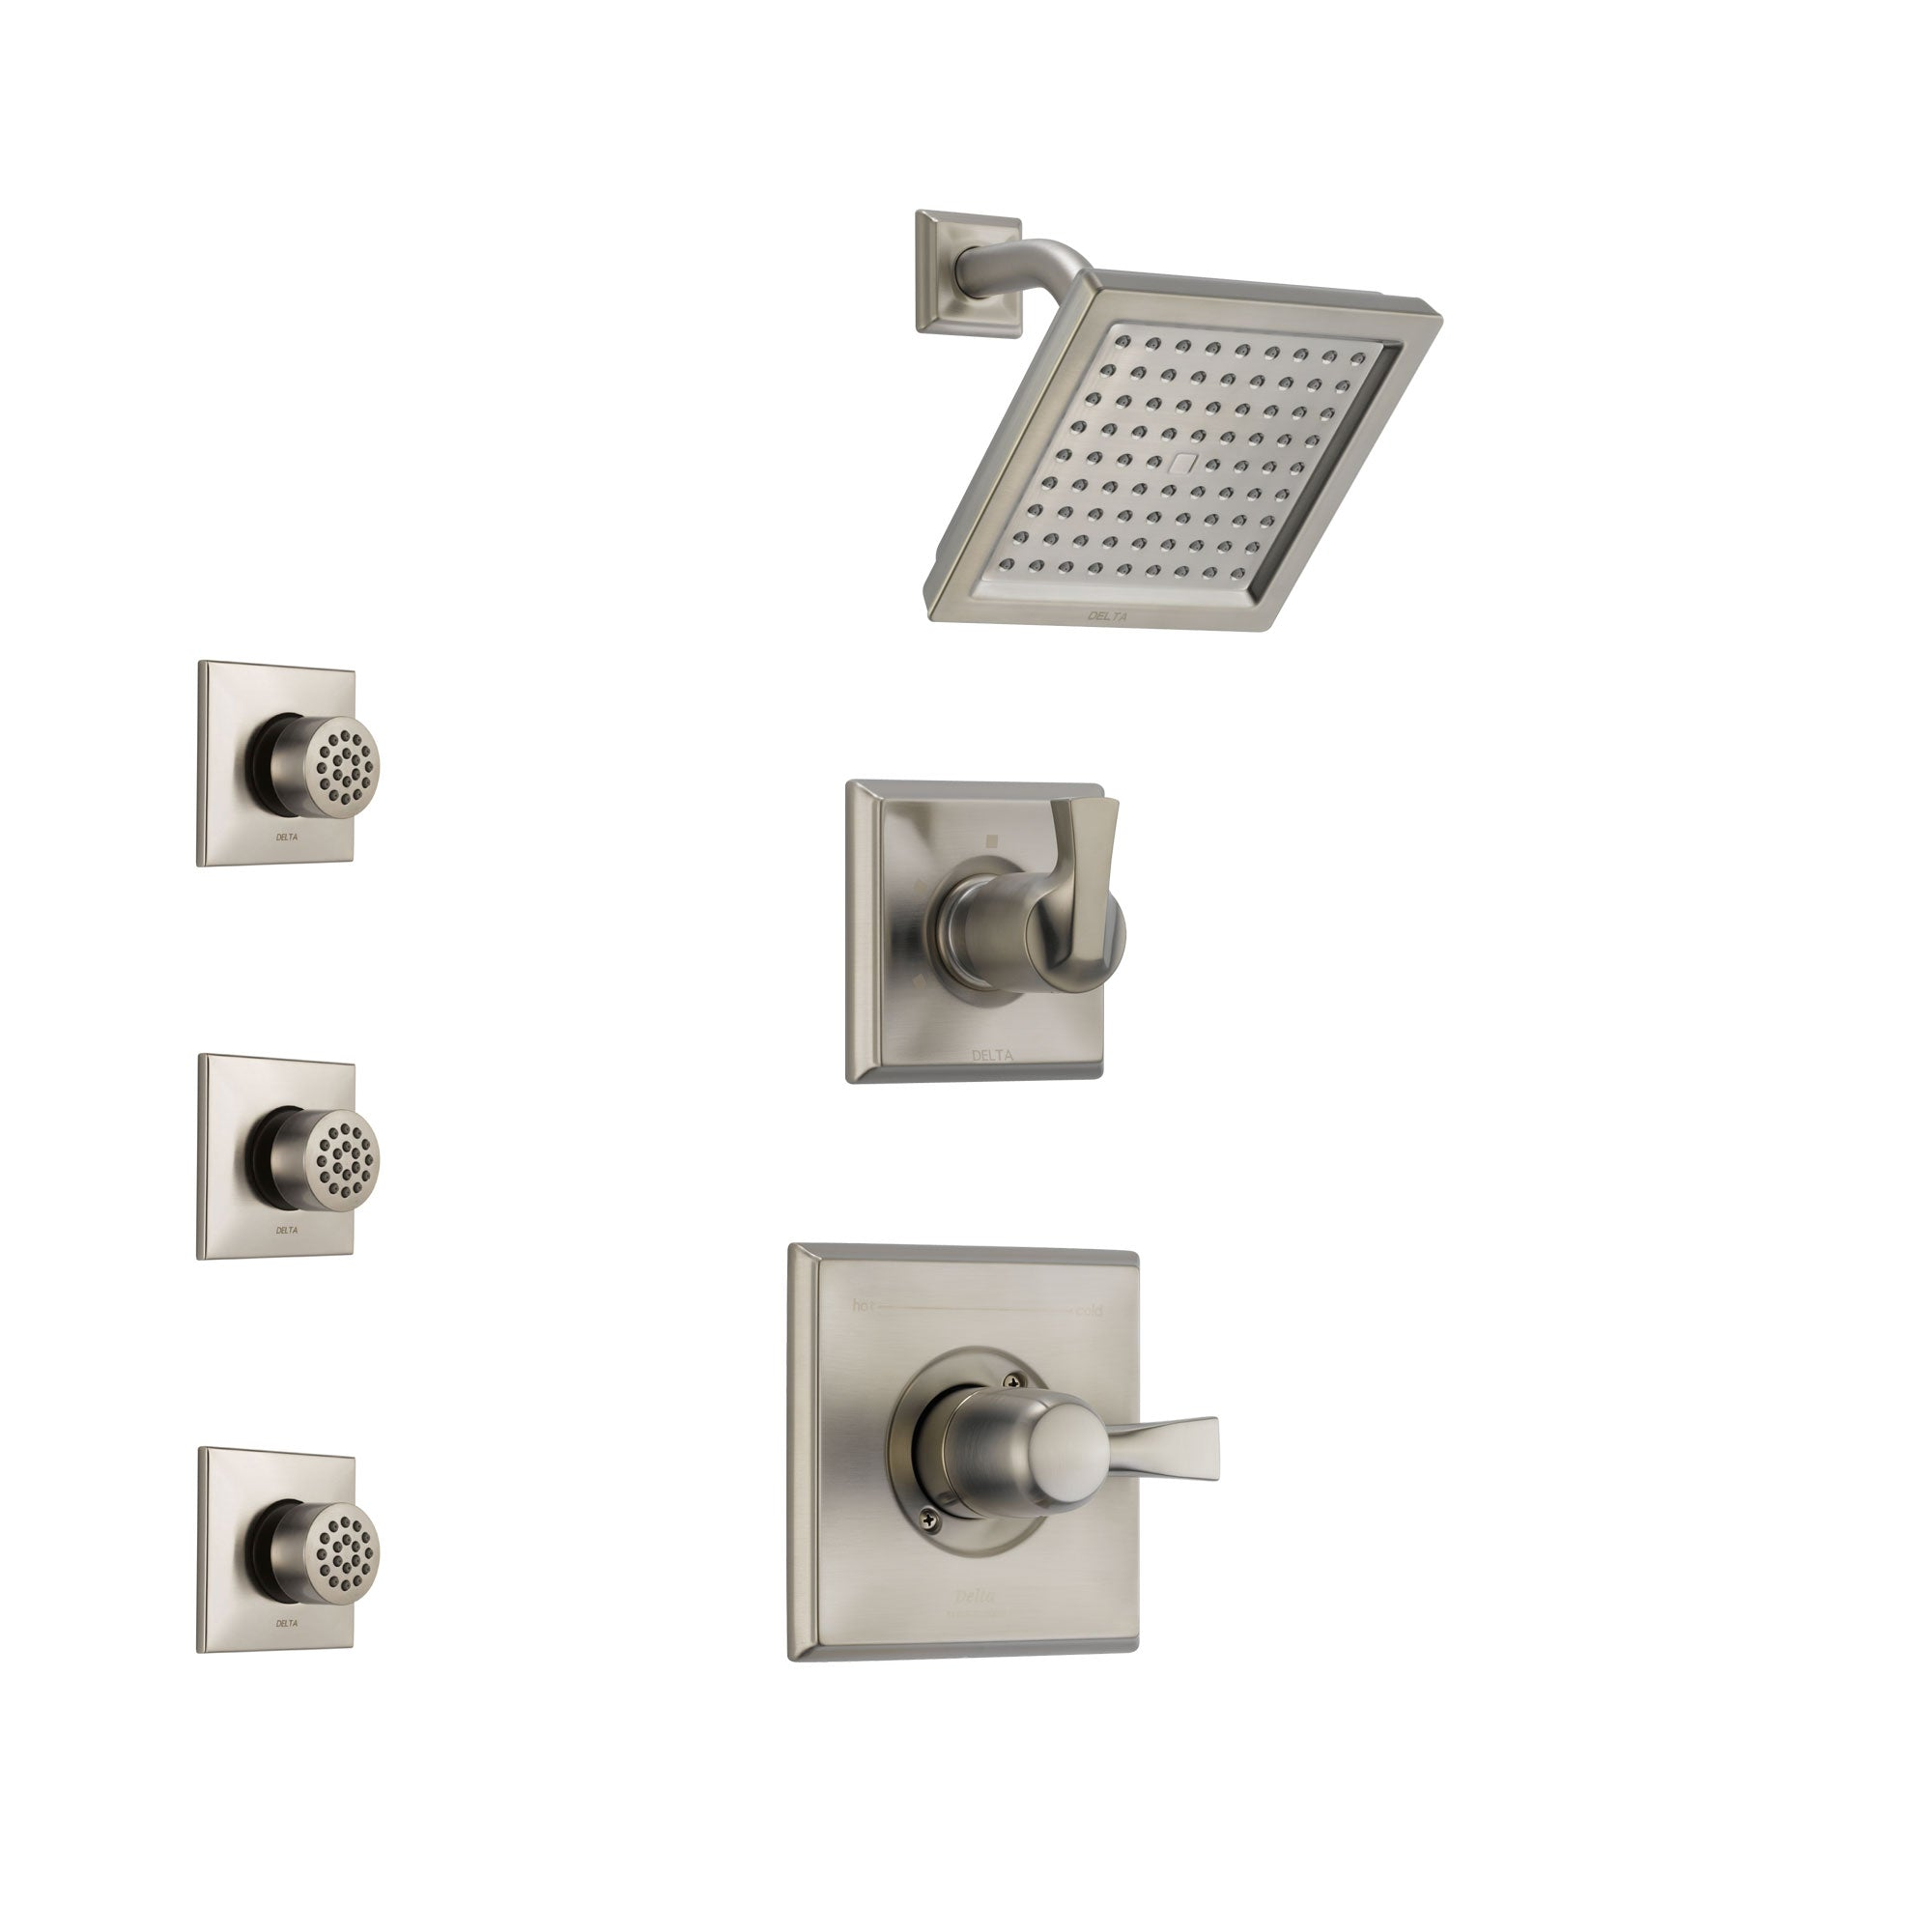 Delta Dryden Stainless Steel Finish Shower System with Control Handle, 3-Setting Diverter, Showerhead, and 3 Body Sprays SS142511SS1